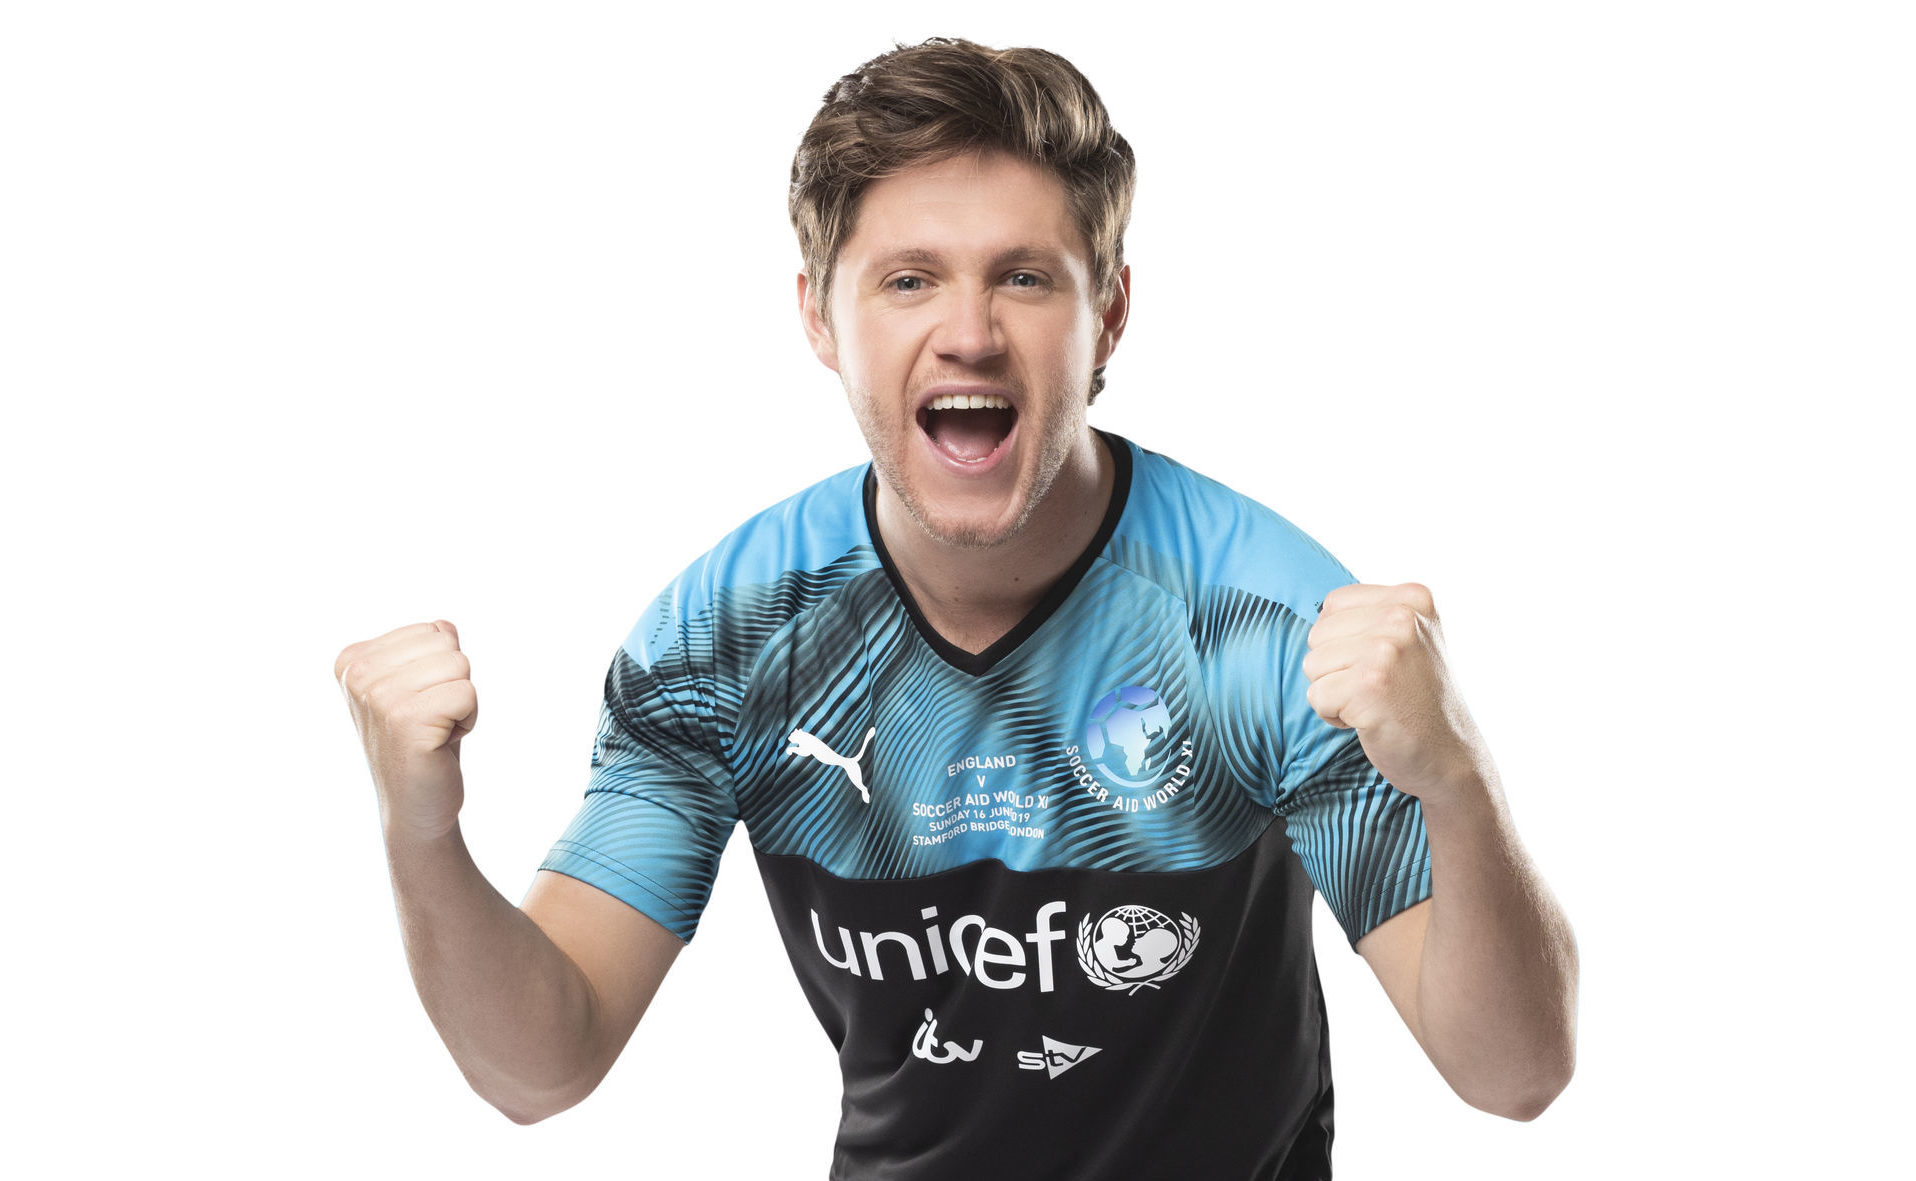 Singer Niall Horan has signed for Soccer Aid 2019